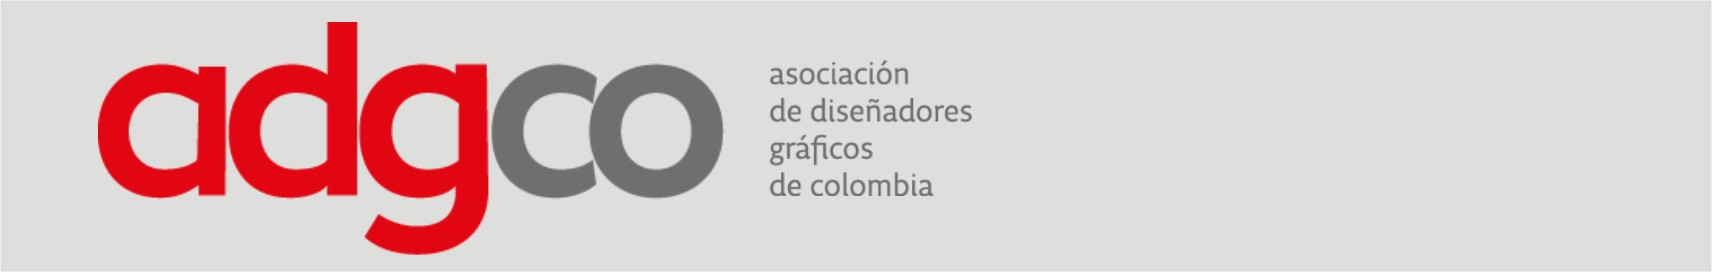 AvalH_ADGColombia